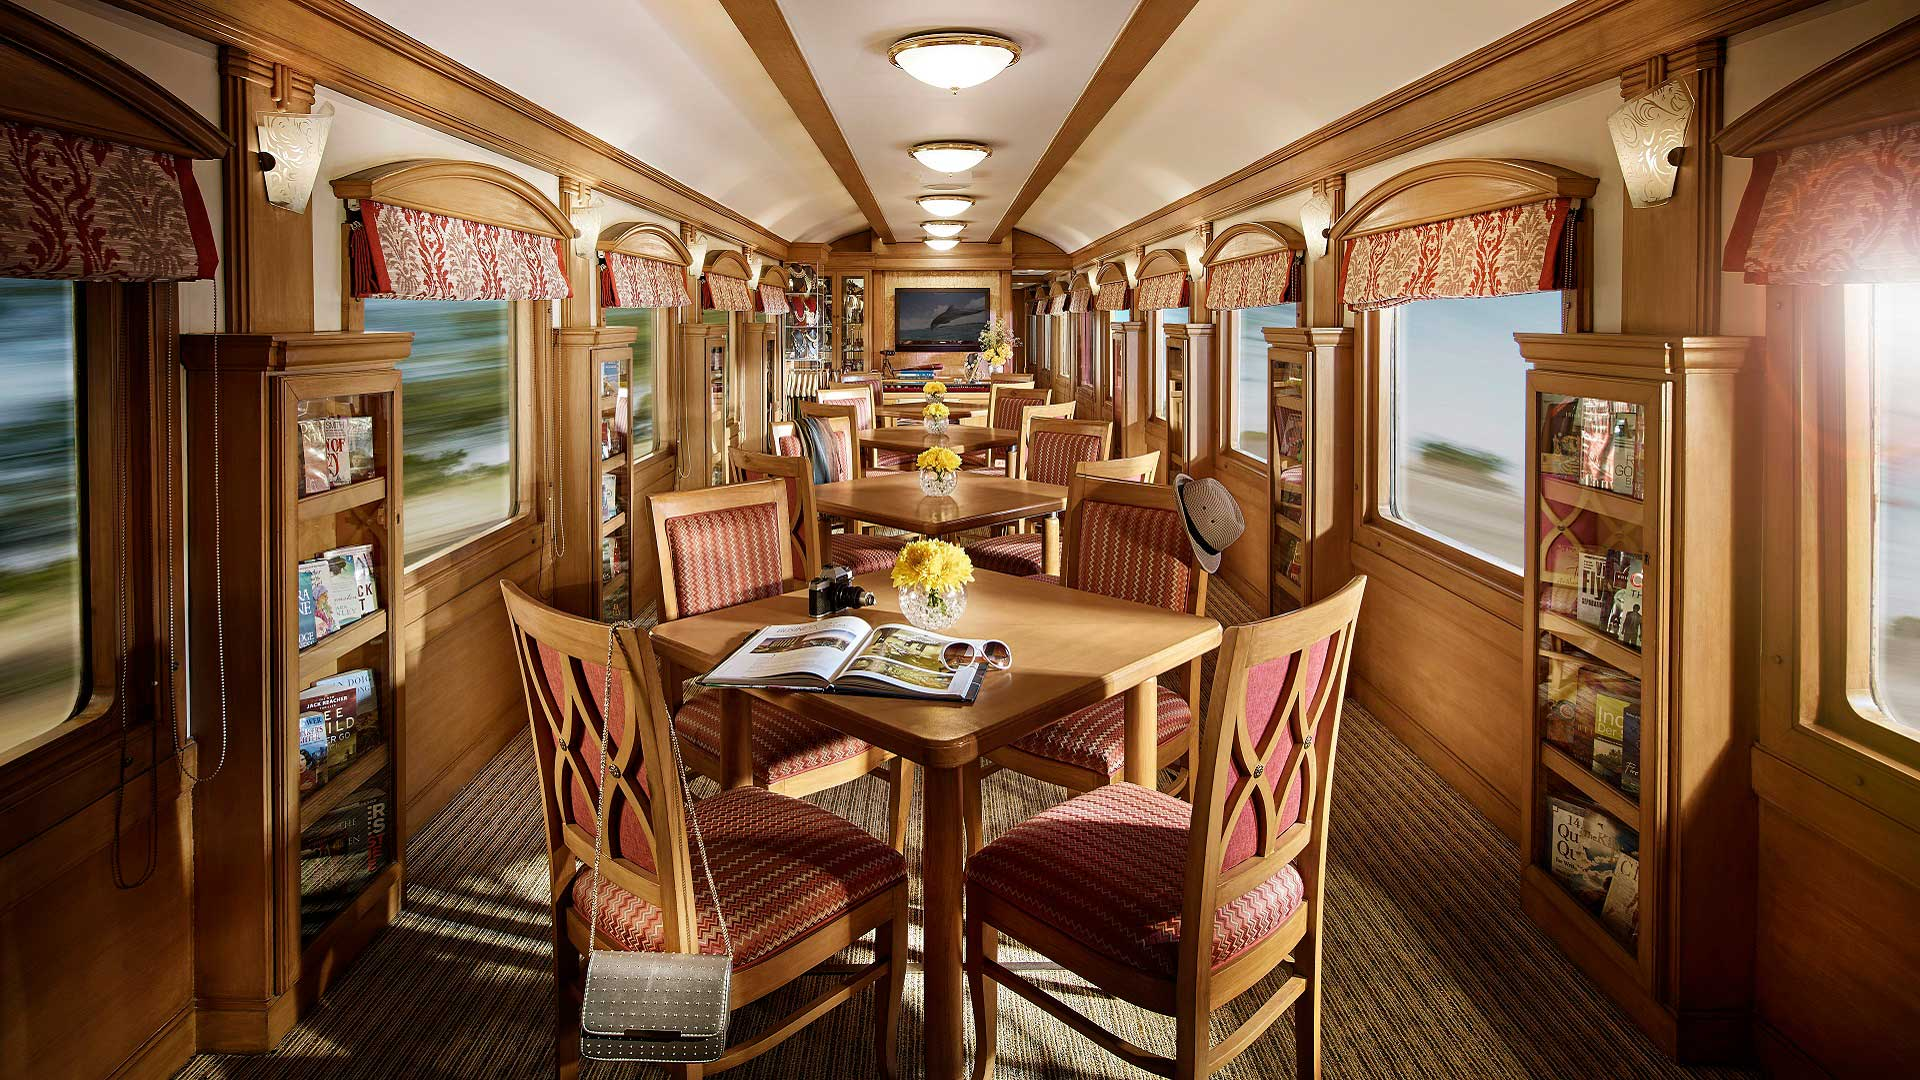 One of the lounge cars aboard the Deccan Odyssey train, which travels across India with GeoEx